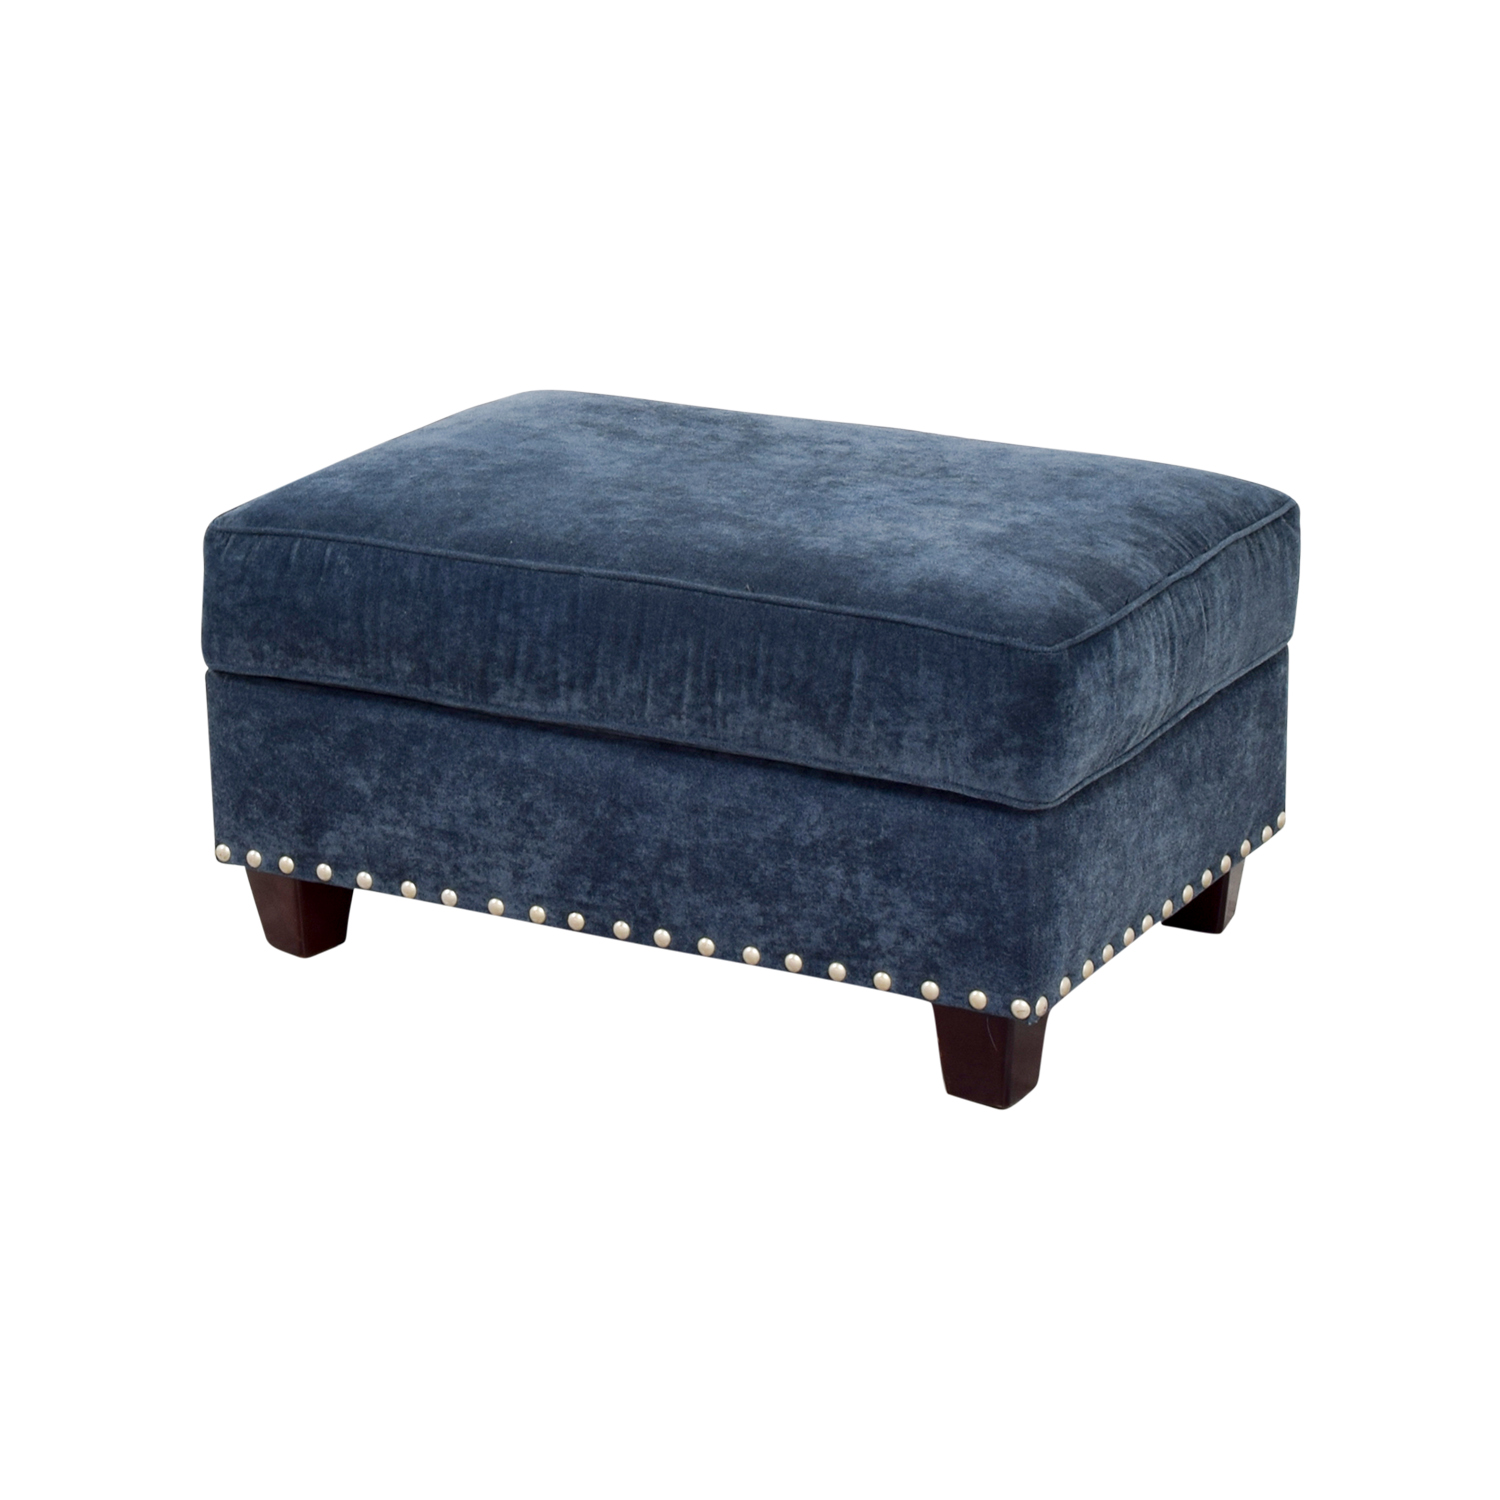 81 Off Bob 39 S Discount Furniture Bob 39 S Furniture Melanie Storage Ottoman Storage